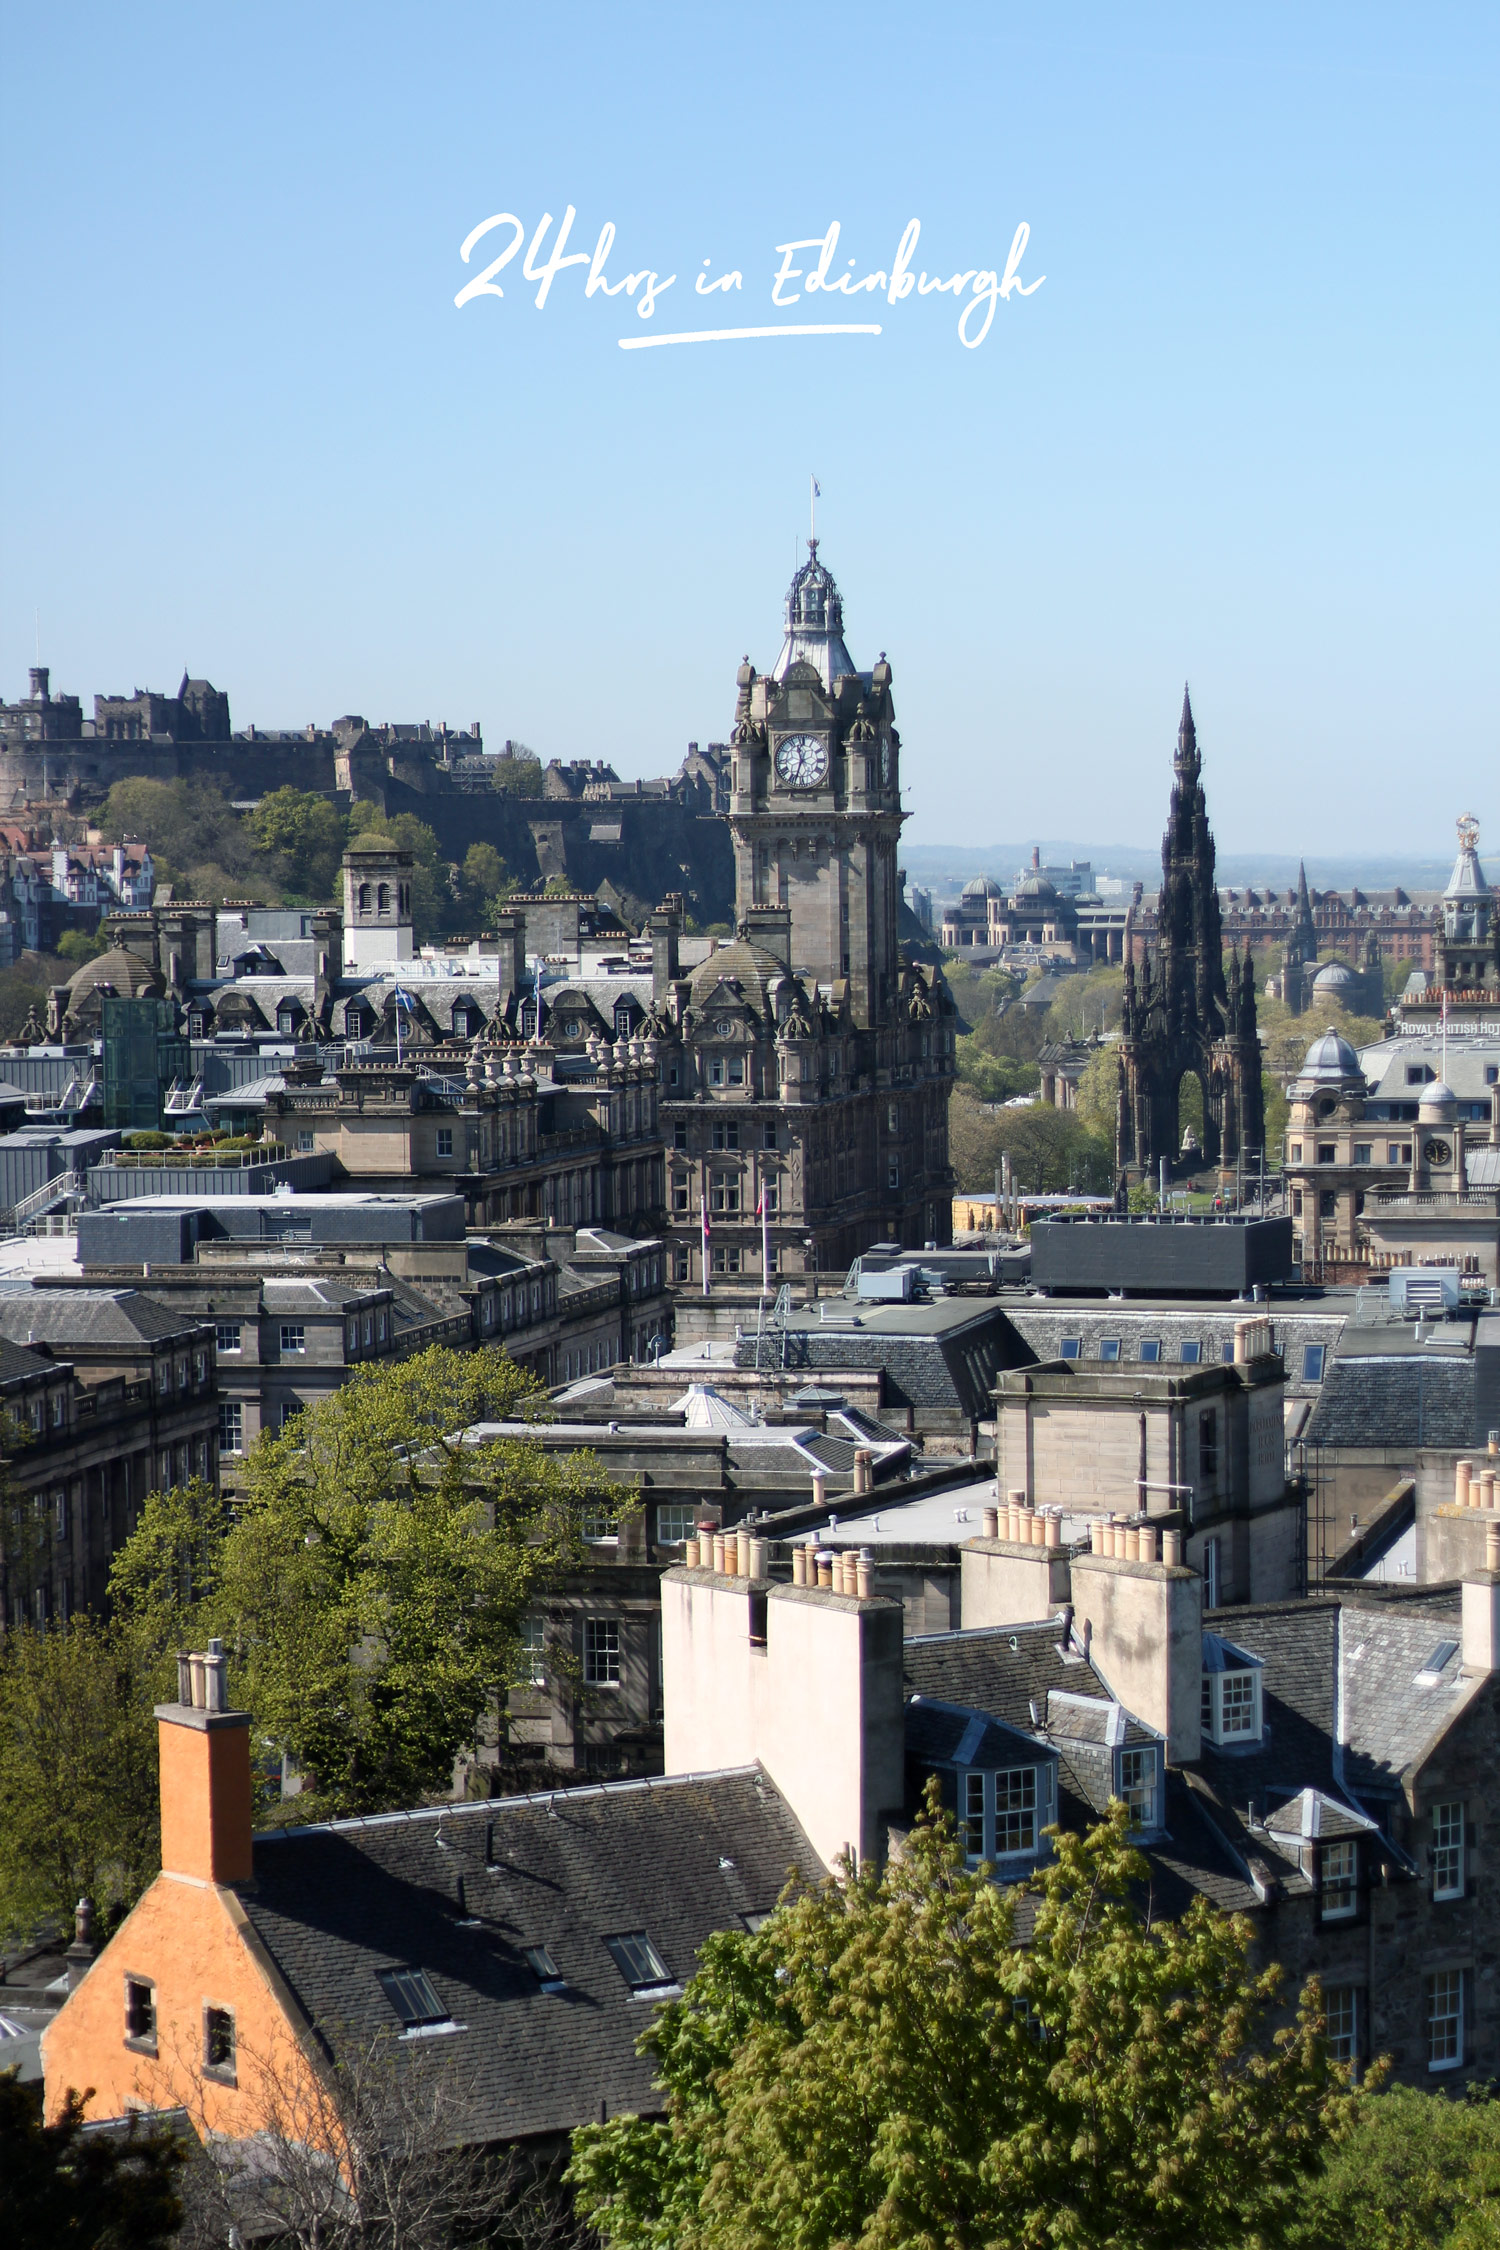 2d8a90ec217 24 Hours in Edinburgh - The Lovecats Inc